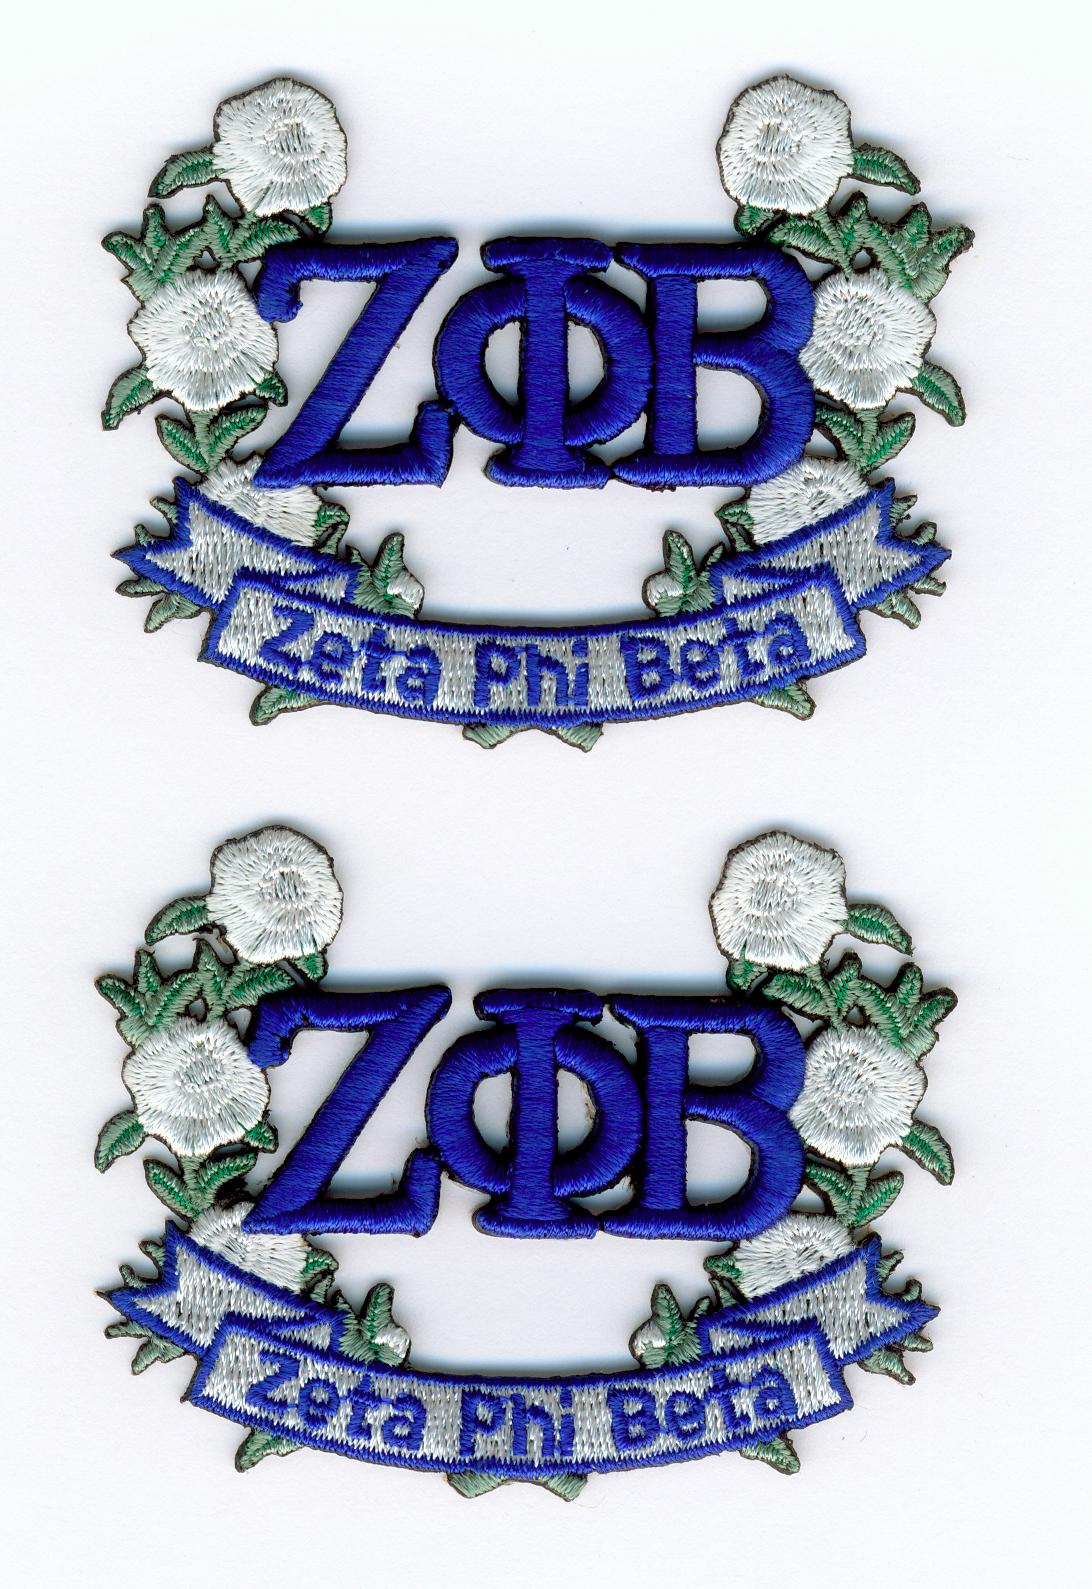 zeta_wreath_patches_set_of_2_small.jpg